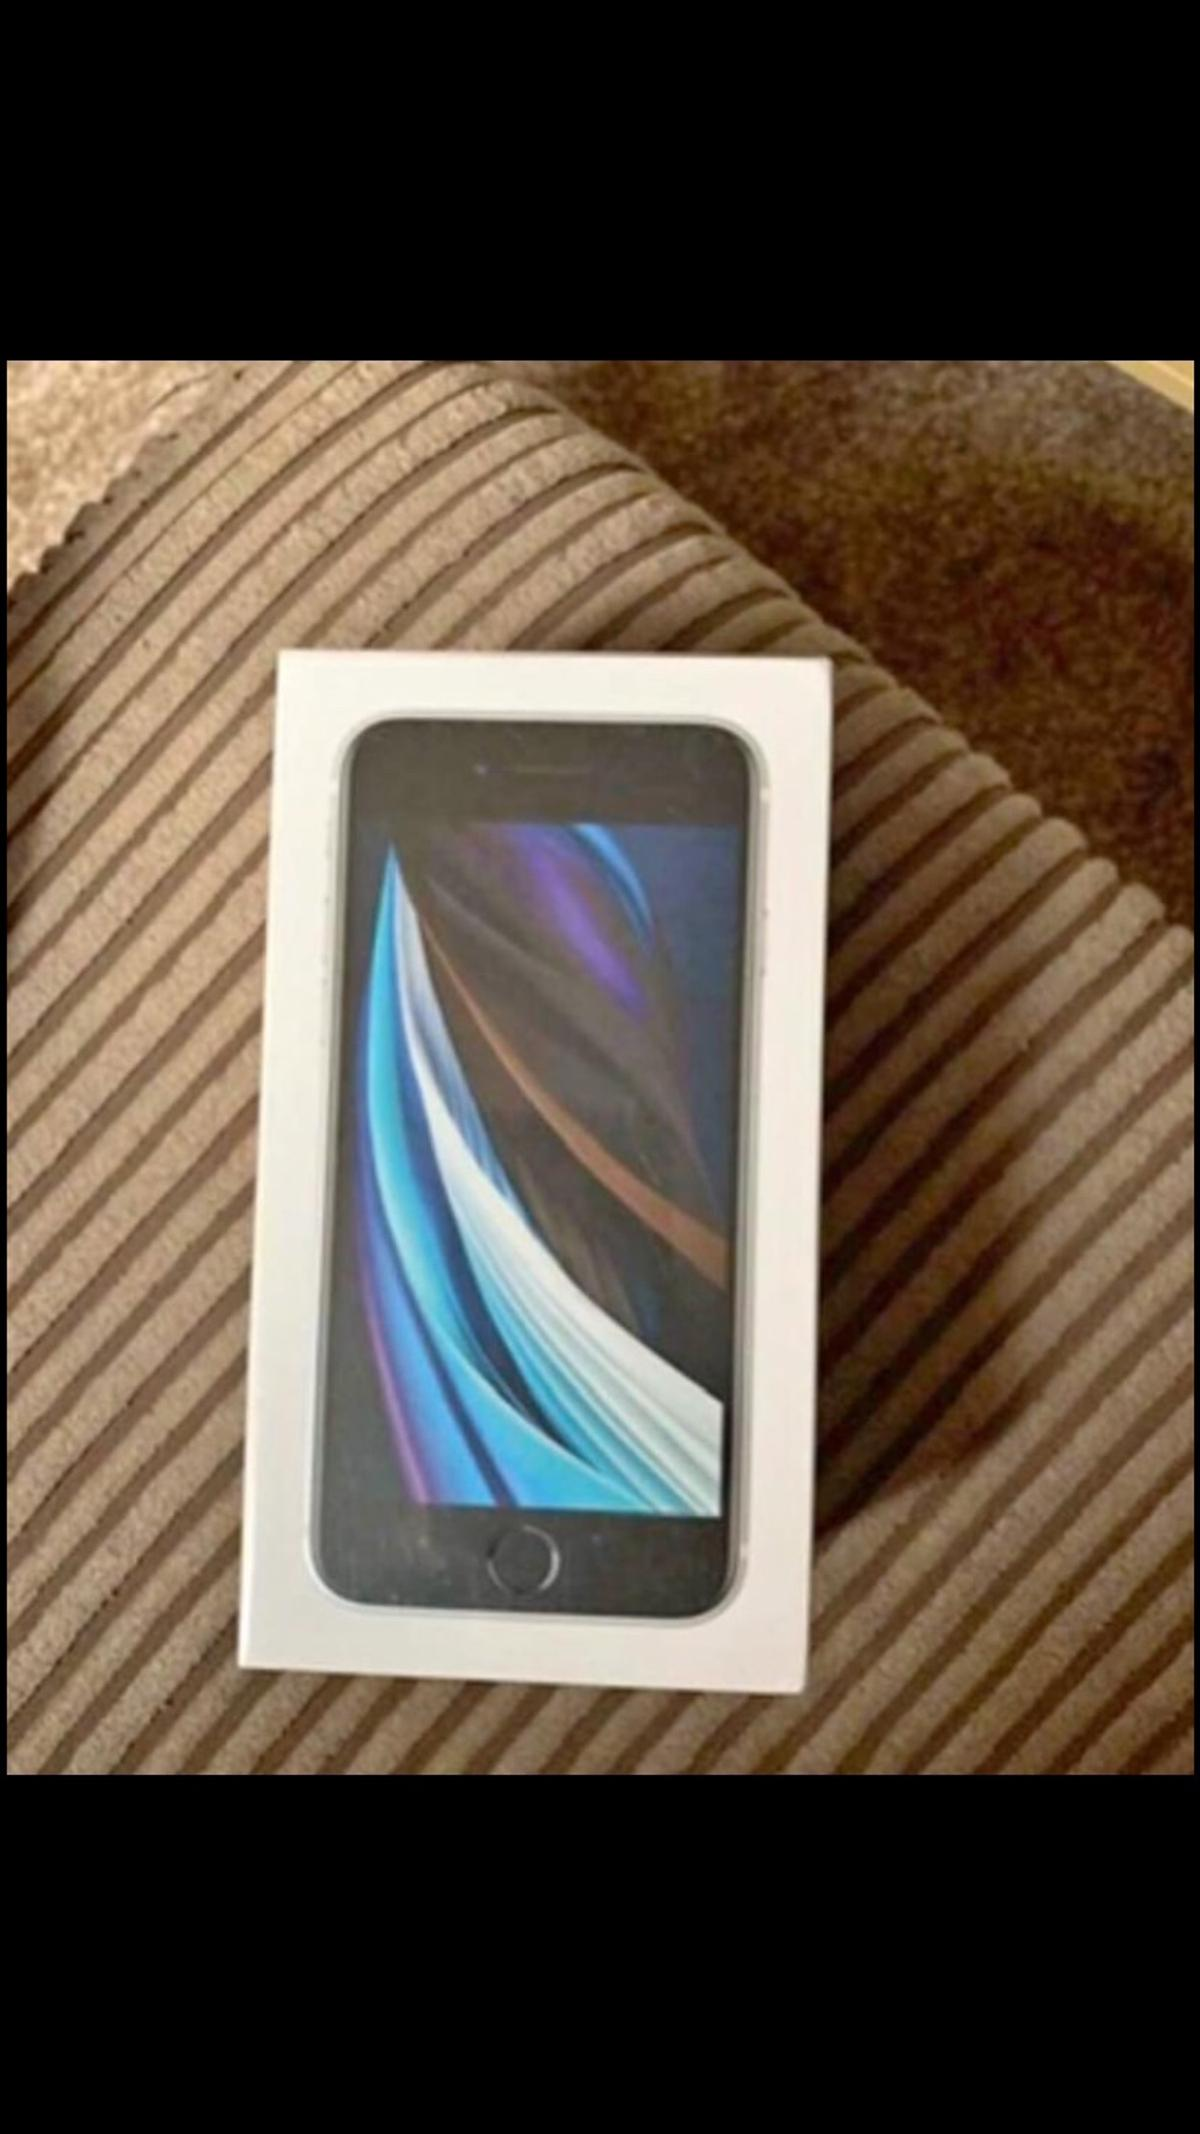 Brand new in box and sealed iPhone se 2020 64gb Locked to Tesco/o2 Quick sale needed Unwanted upgrade Open to offers